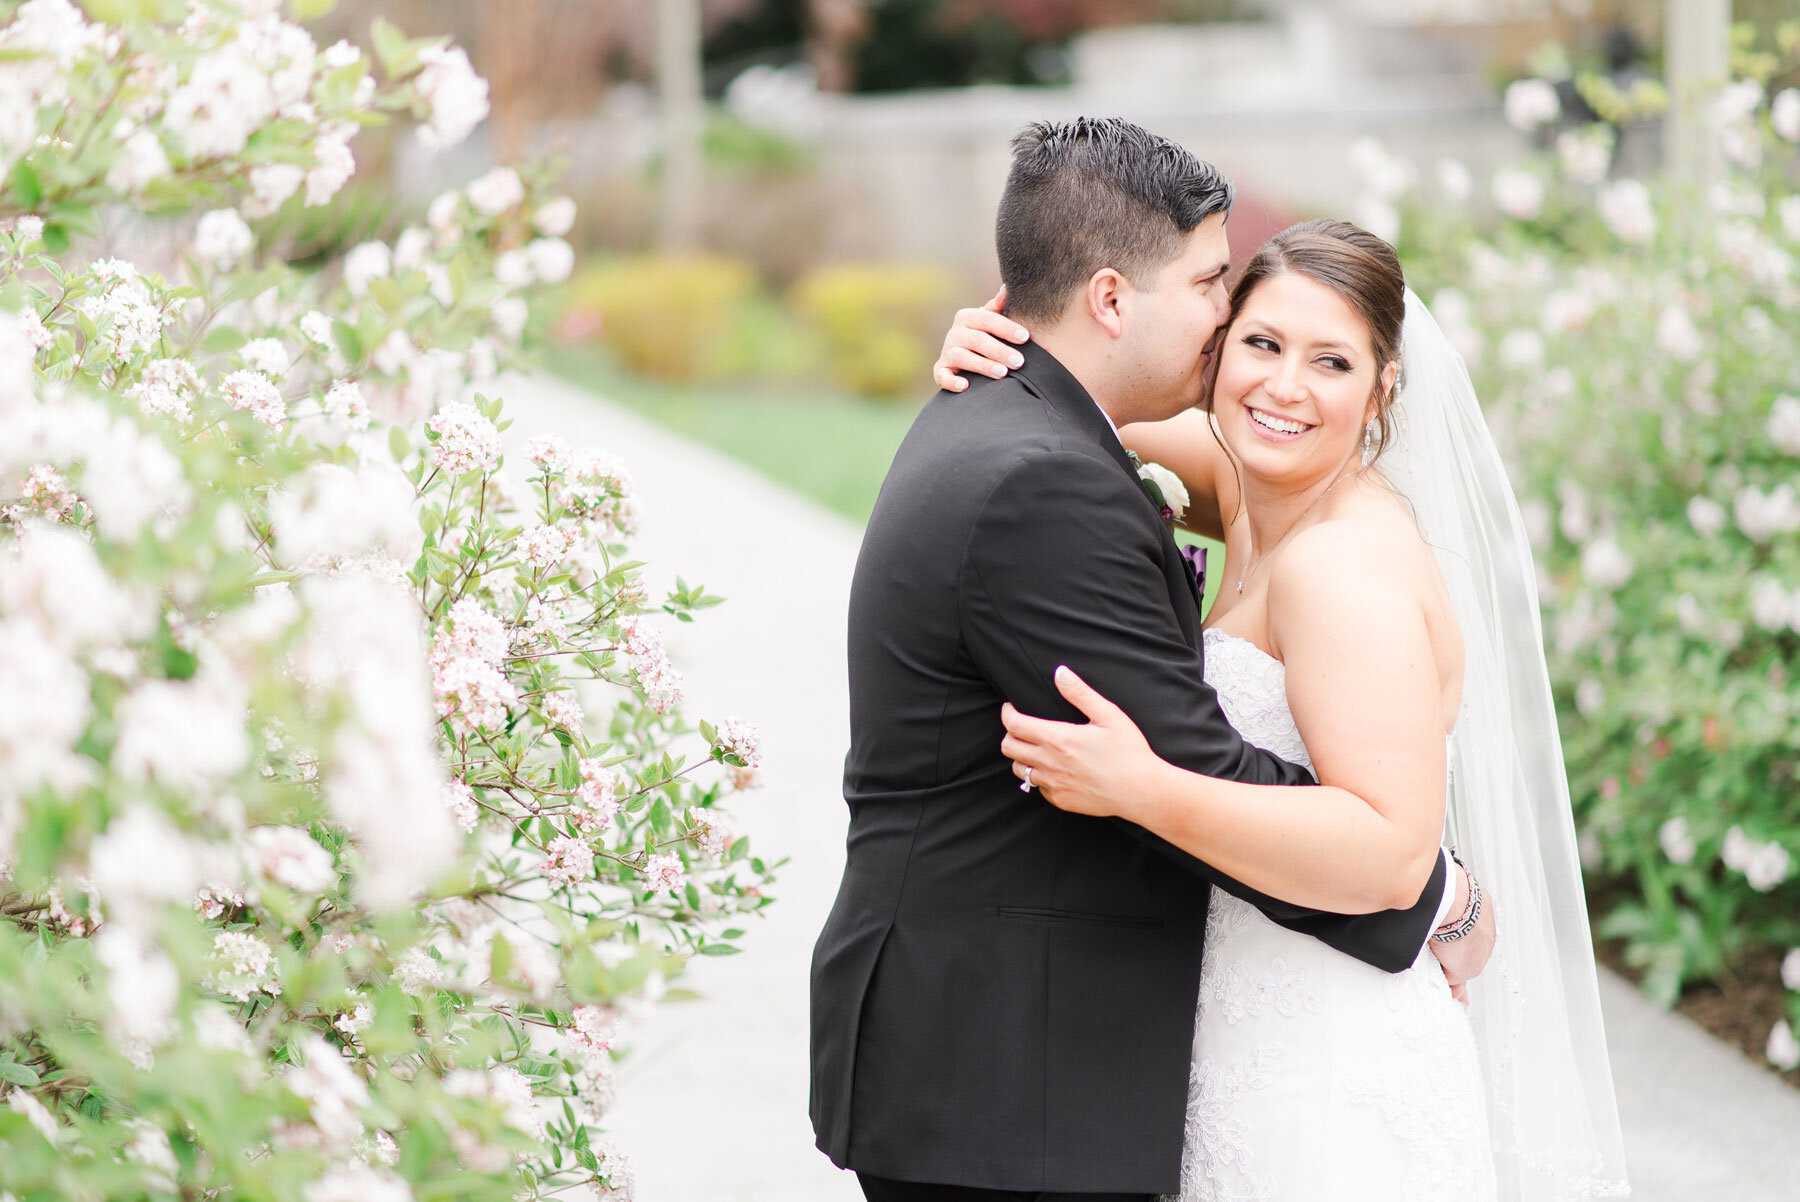 Monica + Stephen - If you have a love for watercolor and an array of stunning purple floral hues, this wedding is for you.